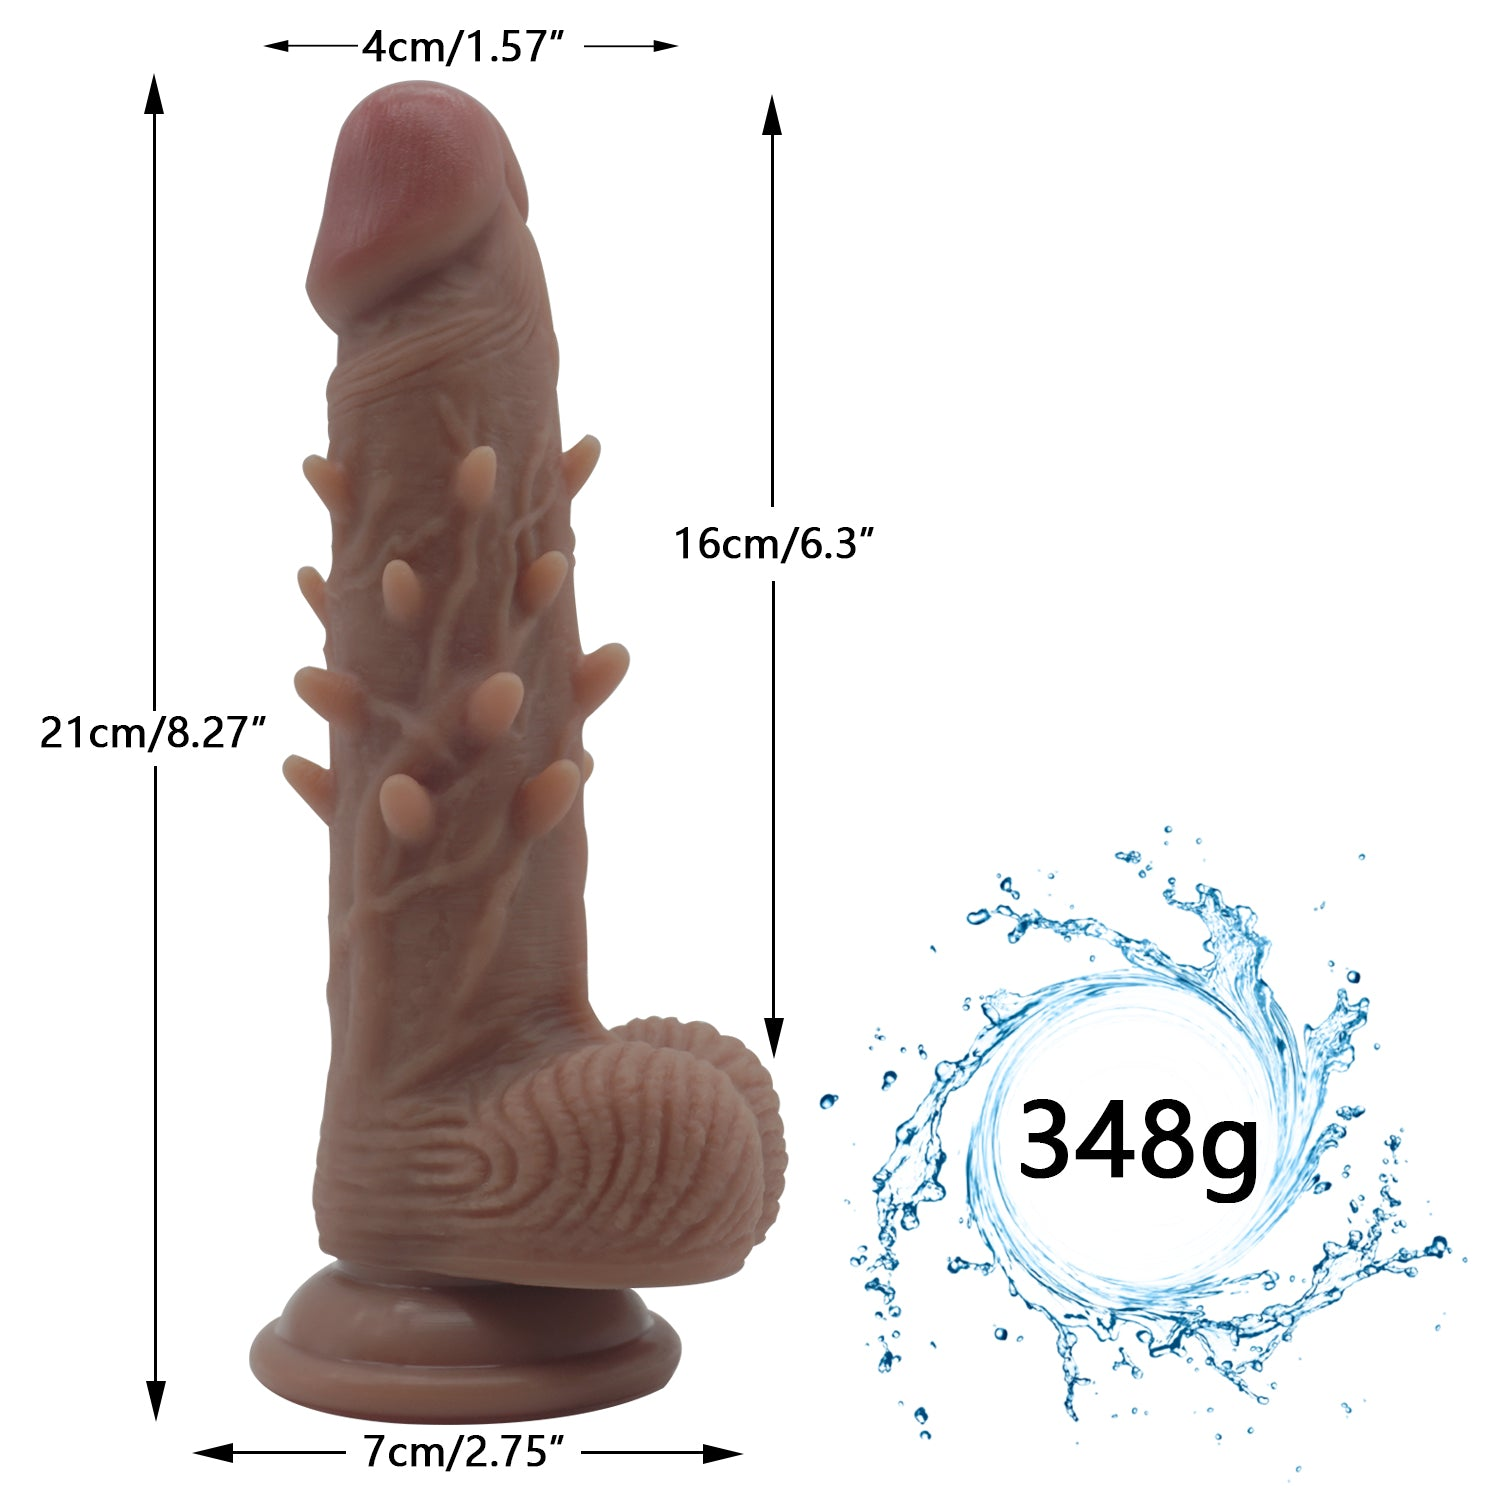 MD Spiked Realistic Silicone Dildo Dong Penis Cock with Suction Cup Flesh & Brown